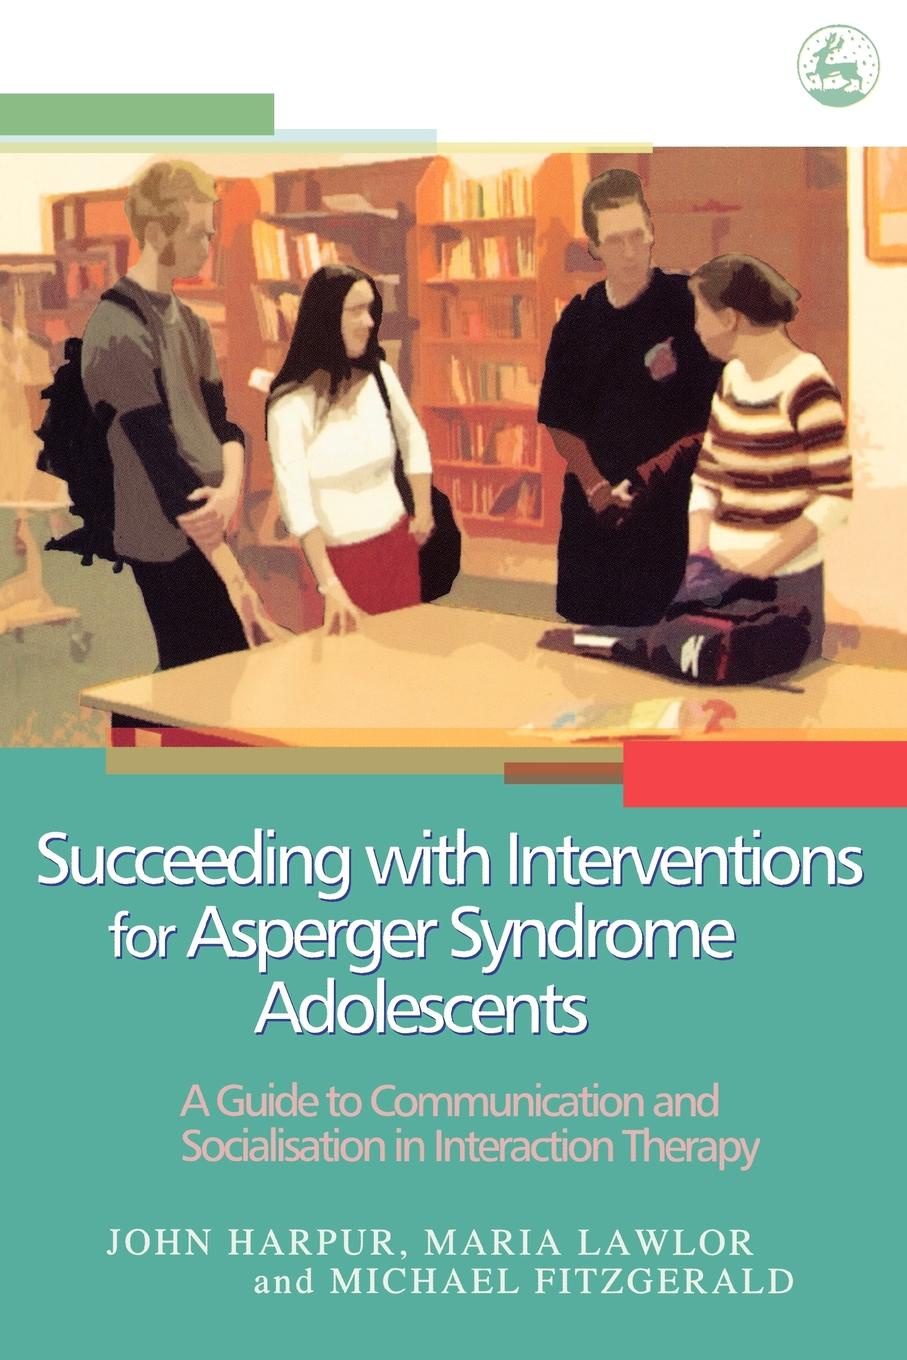 John Harpur, Maria Lawlor, Michael Fitzgerald Succeeding with Interventions for Asperger Syndrome Adolescents. A Guide to Communication and Socialization in Interaction Therapy mark vitha f hydrophilic interaction chromatography a guide for practitioners